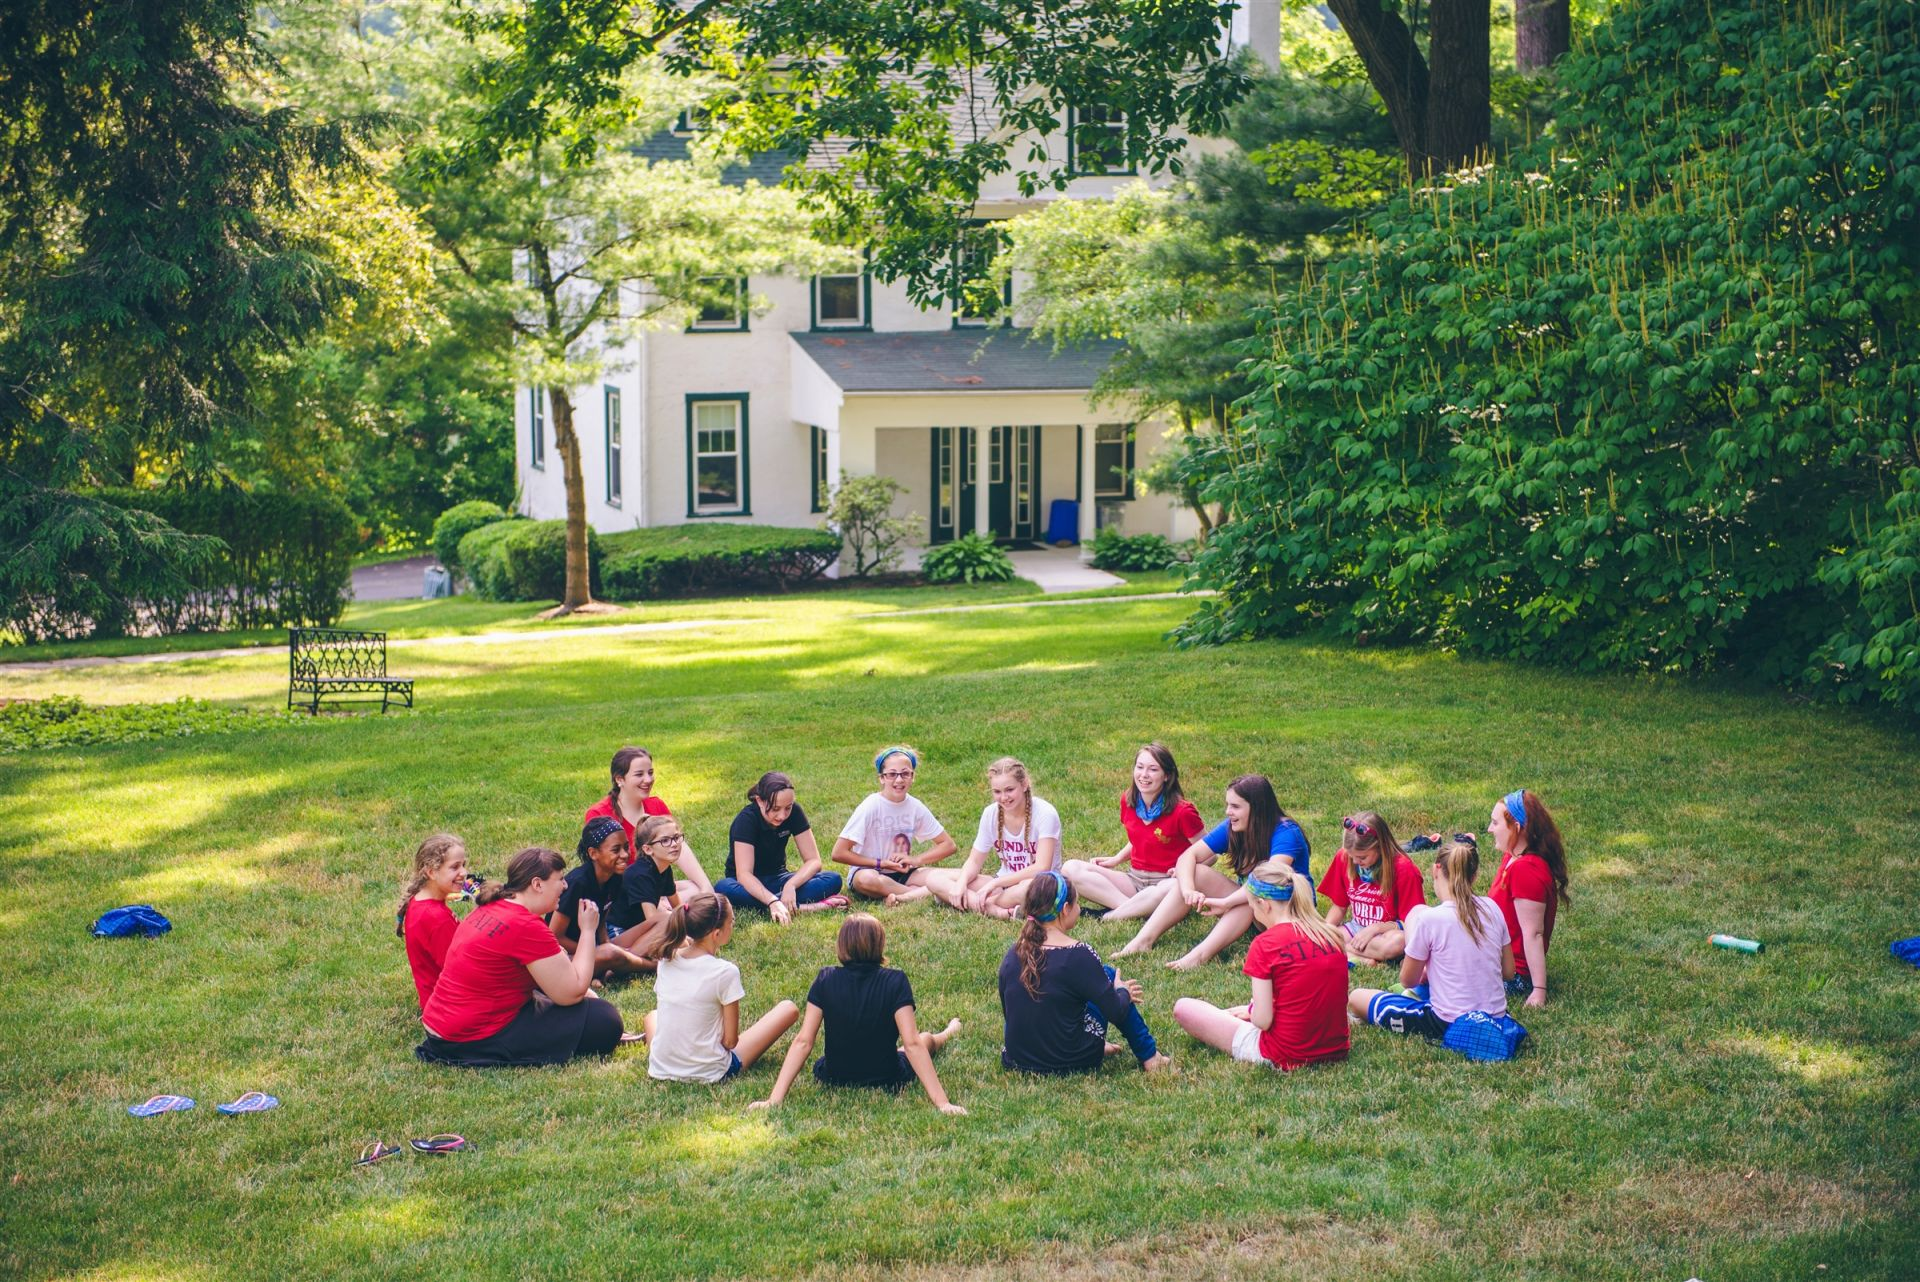 Campers enjoy the shady lawns of campus where they can gather in groups for camp activities.